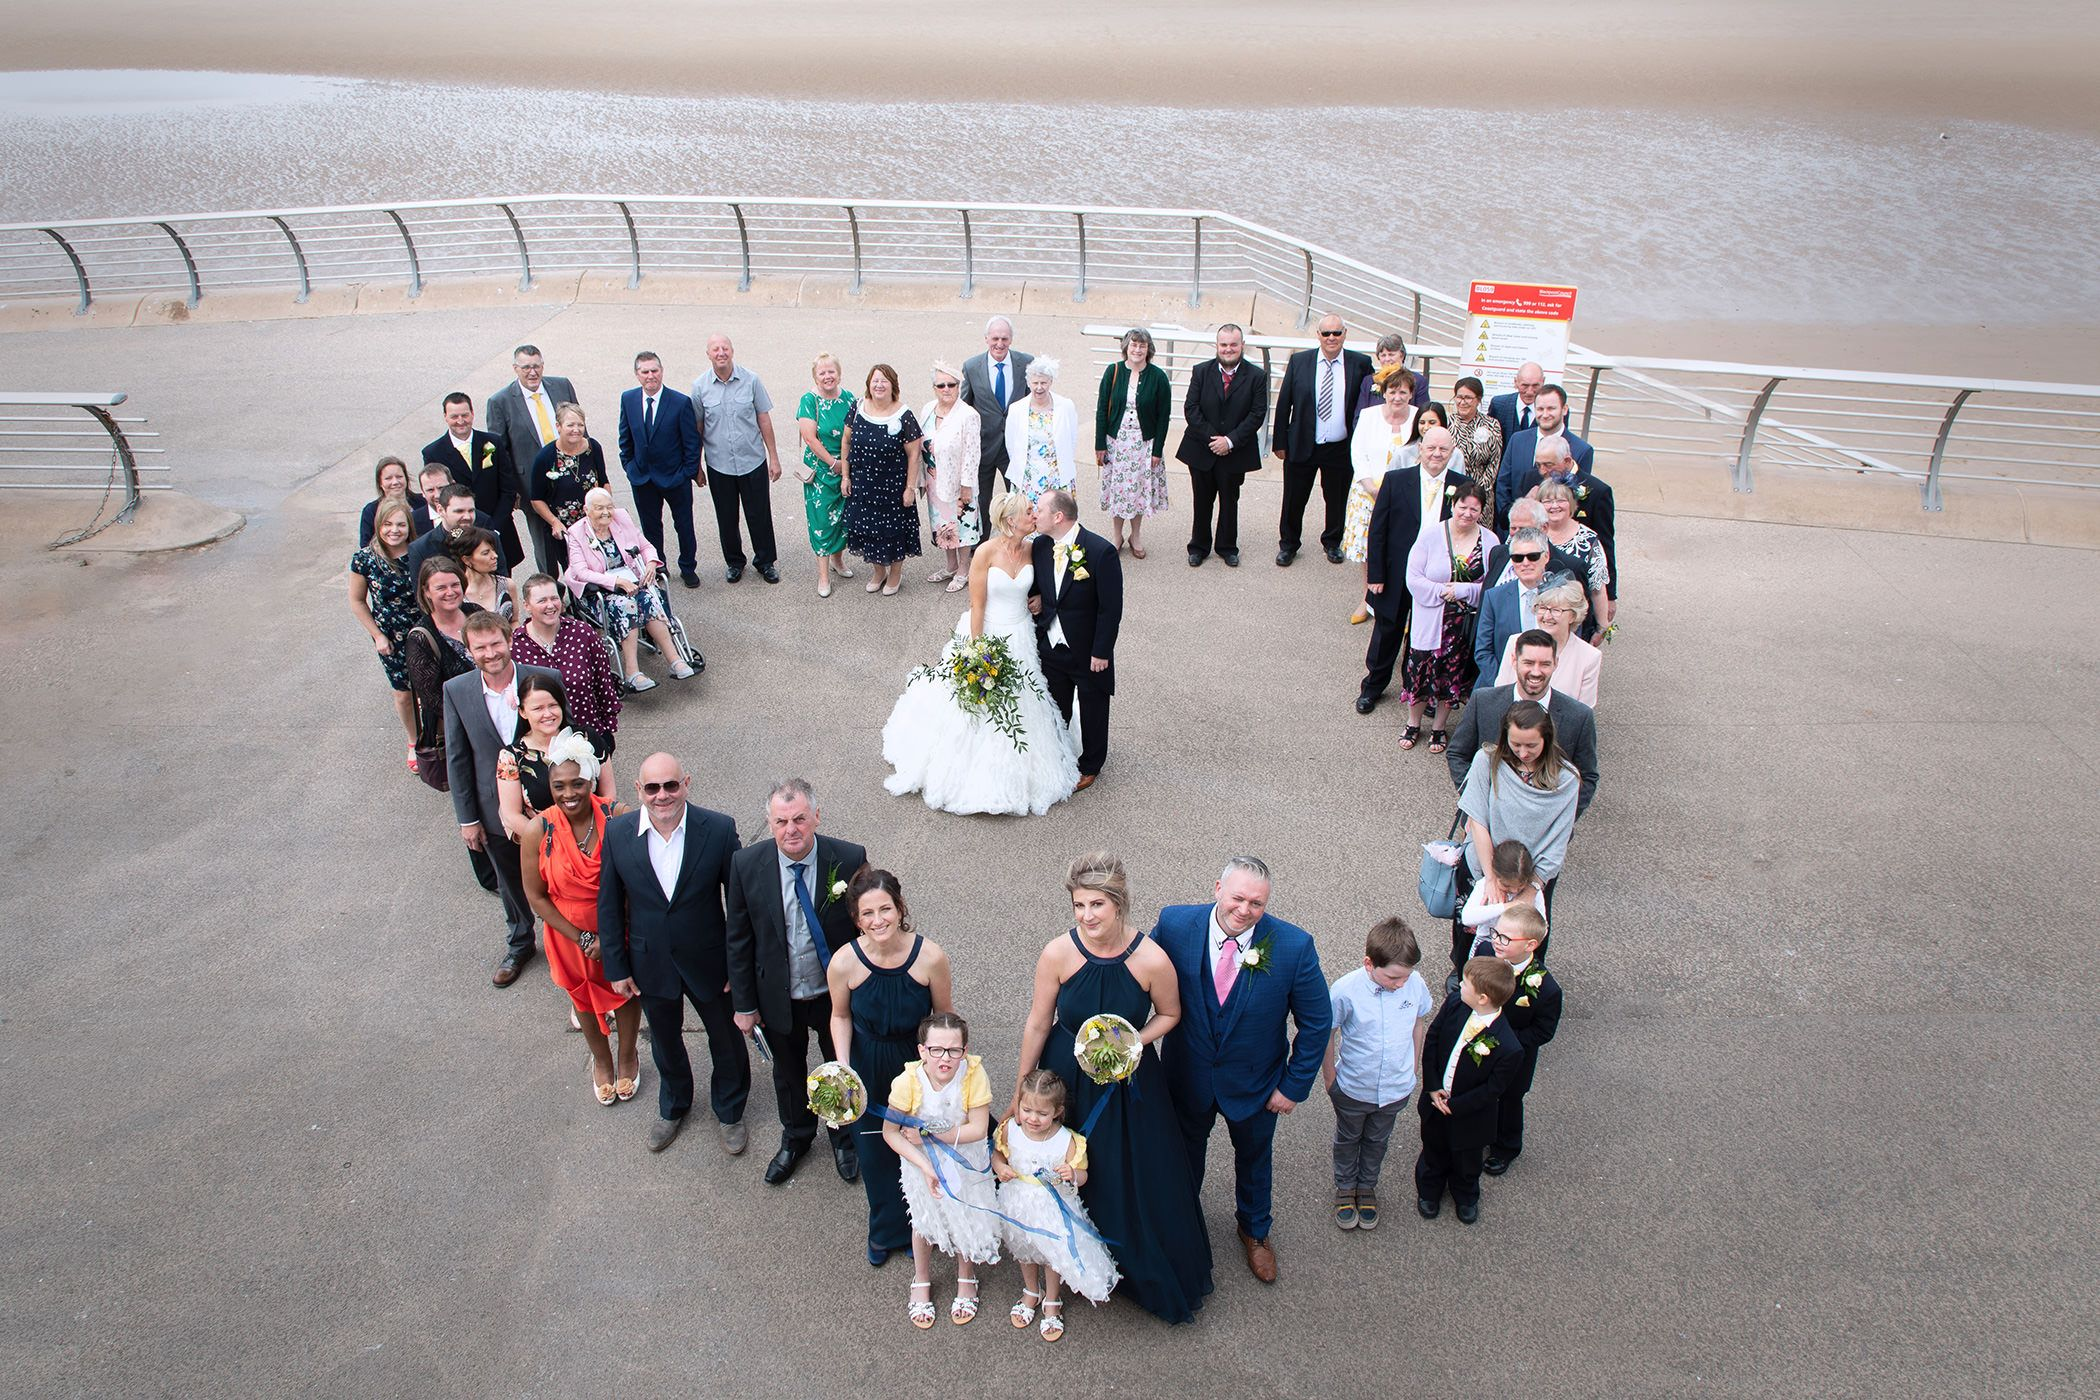 the big group wedding photo